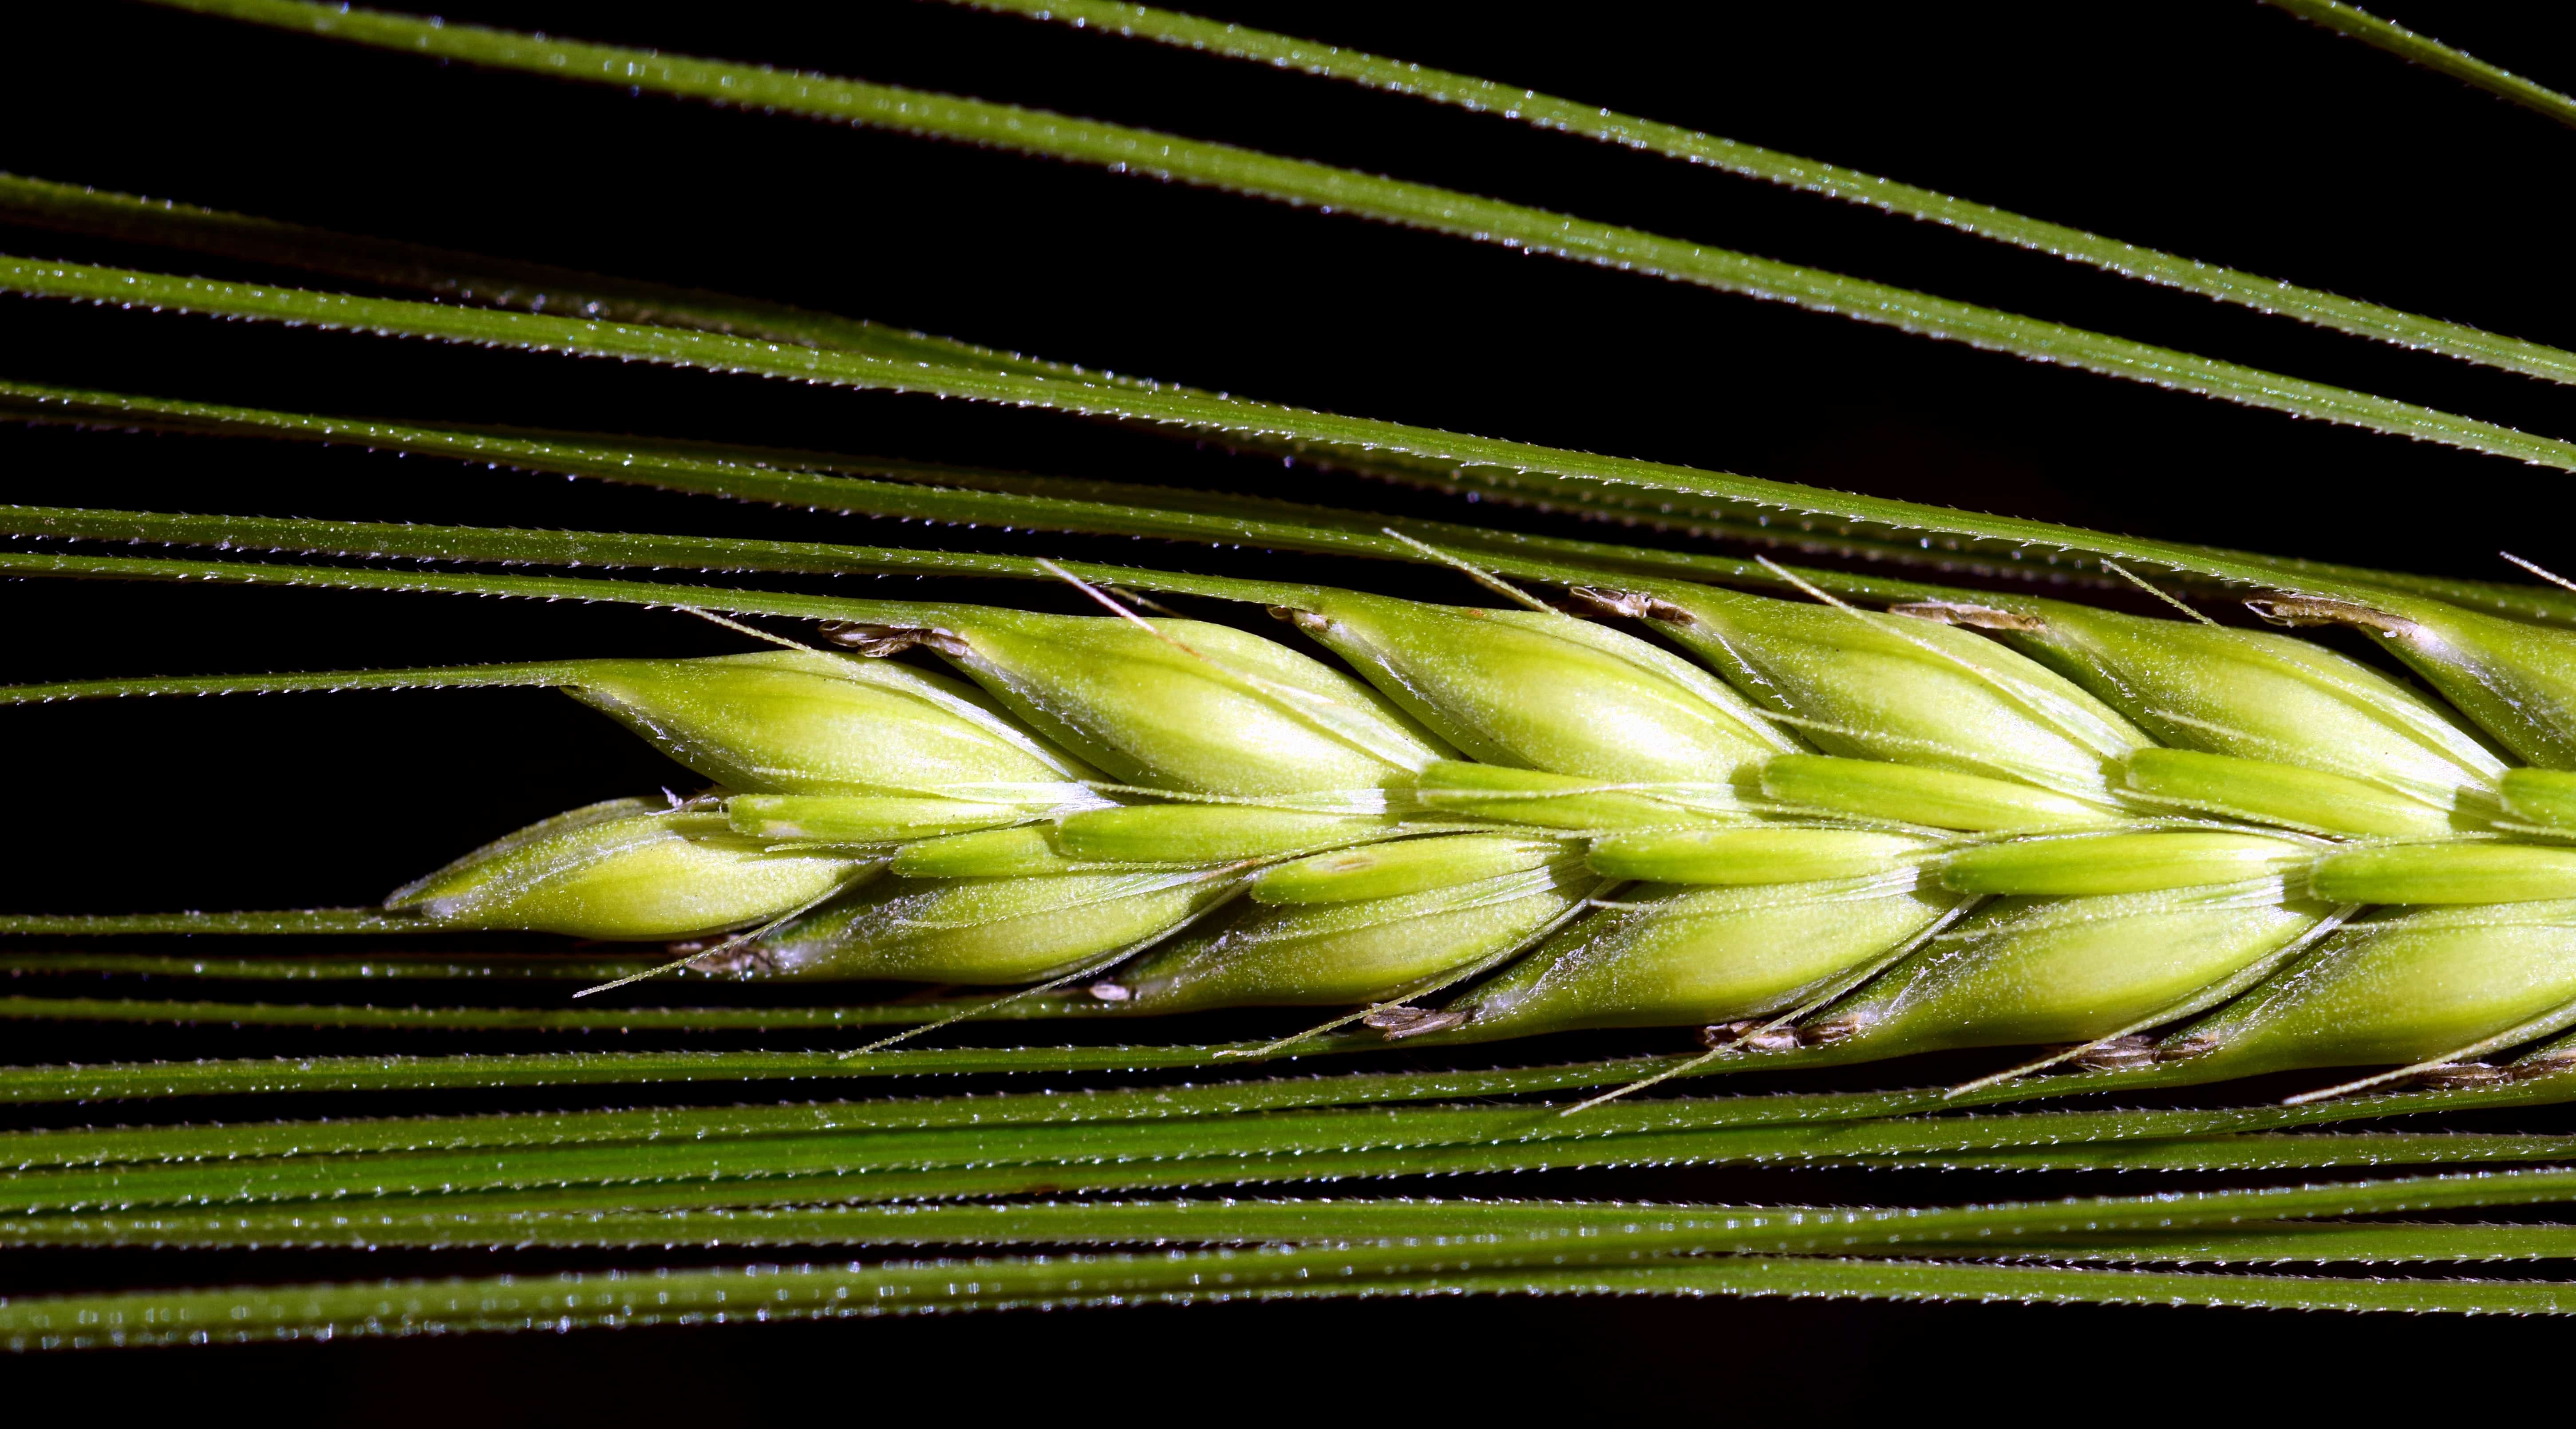 free picture  flora  food  summer  grain  plant  macro